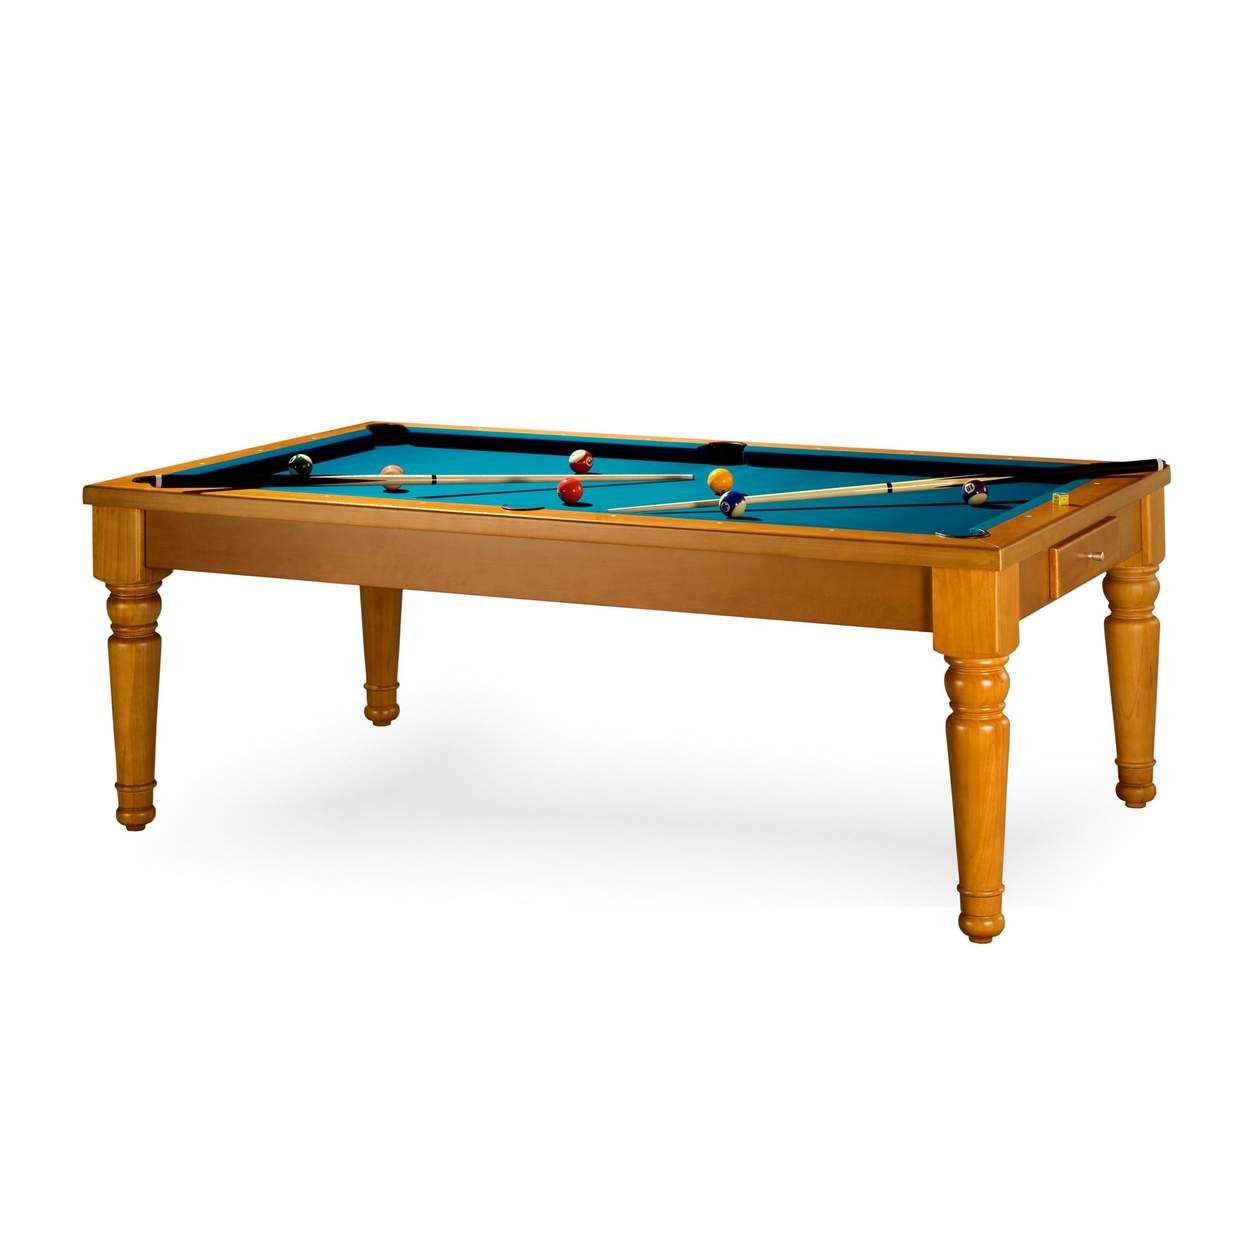 Les promotions de billards du grand d p t for Table jeu exterieur